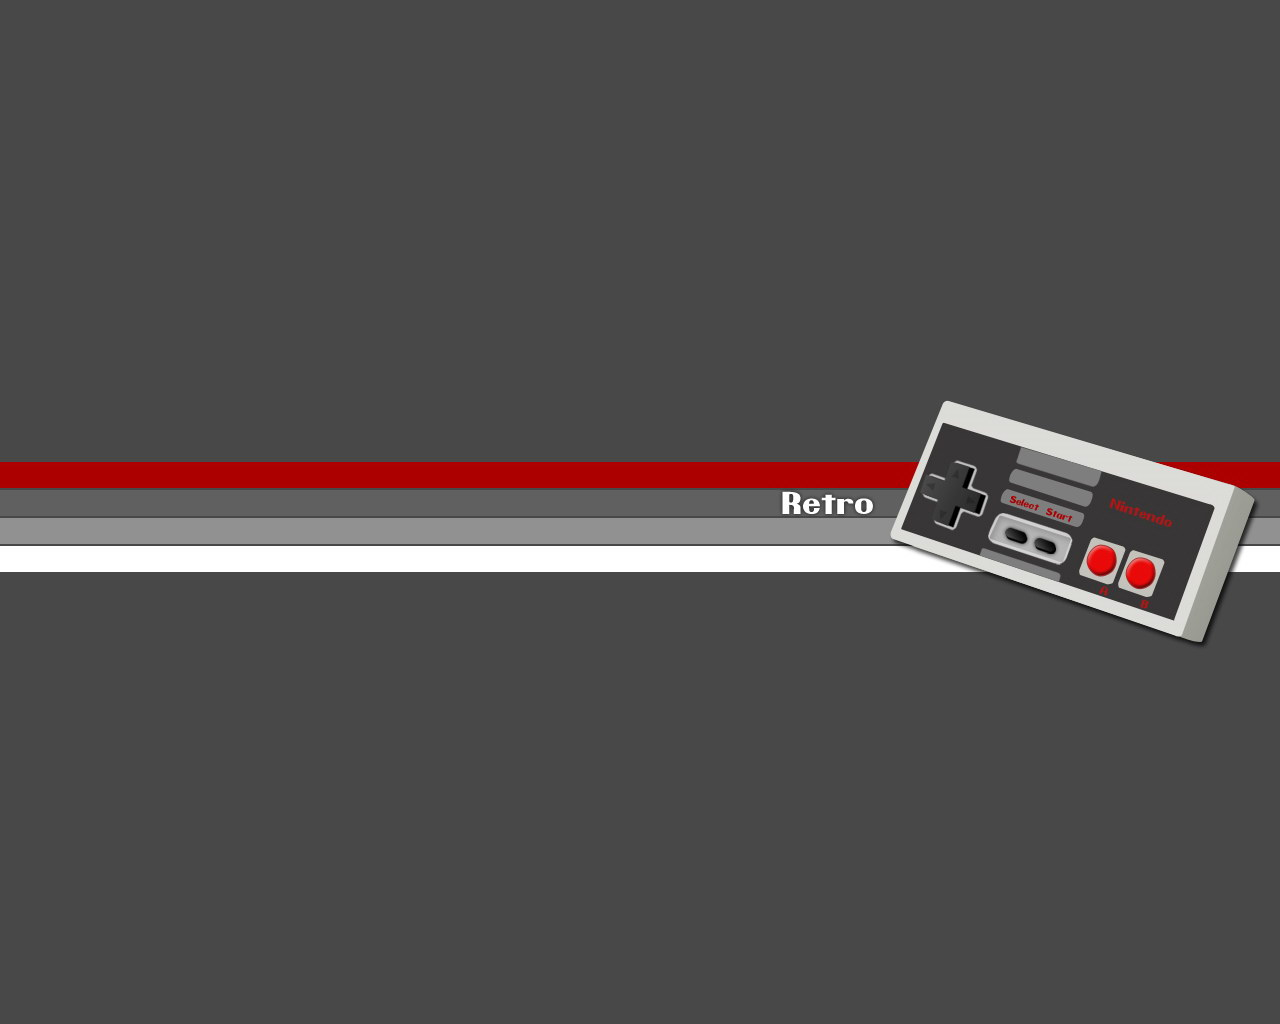 Old school Retro style console controller desktop wallpaper 1280x1024